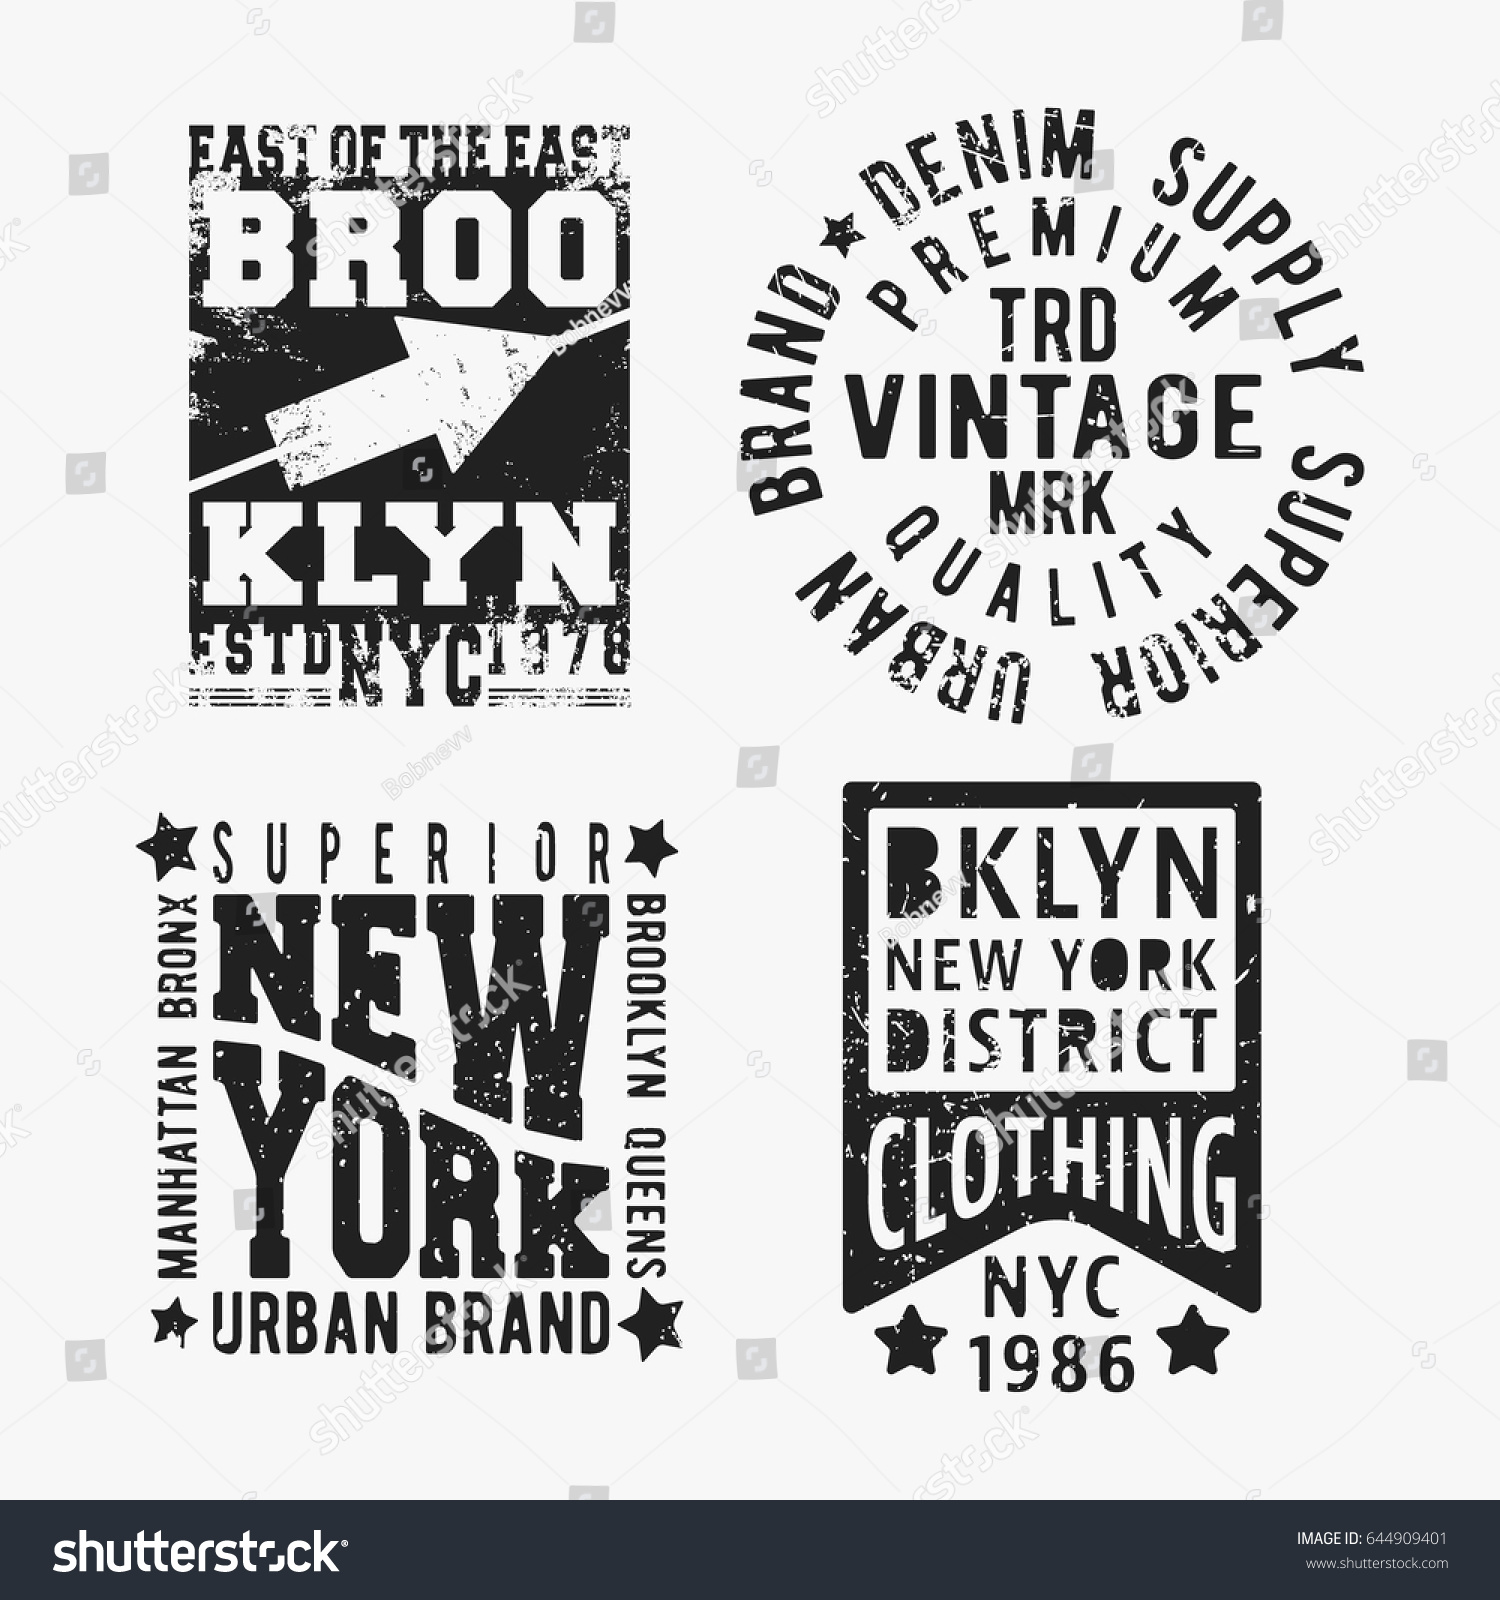 Design t shirt label - T Shirt Print Design Set Of Various Vintage Stamp Printing And Badge Applique